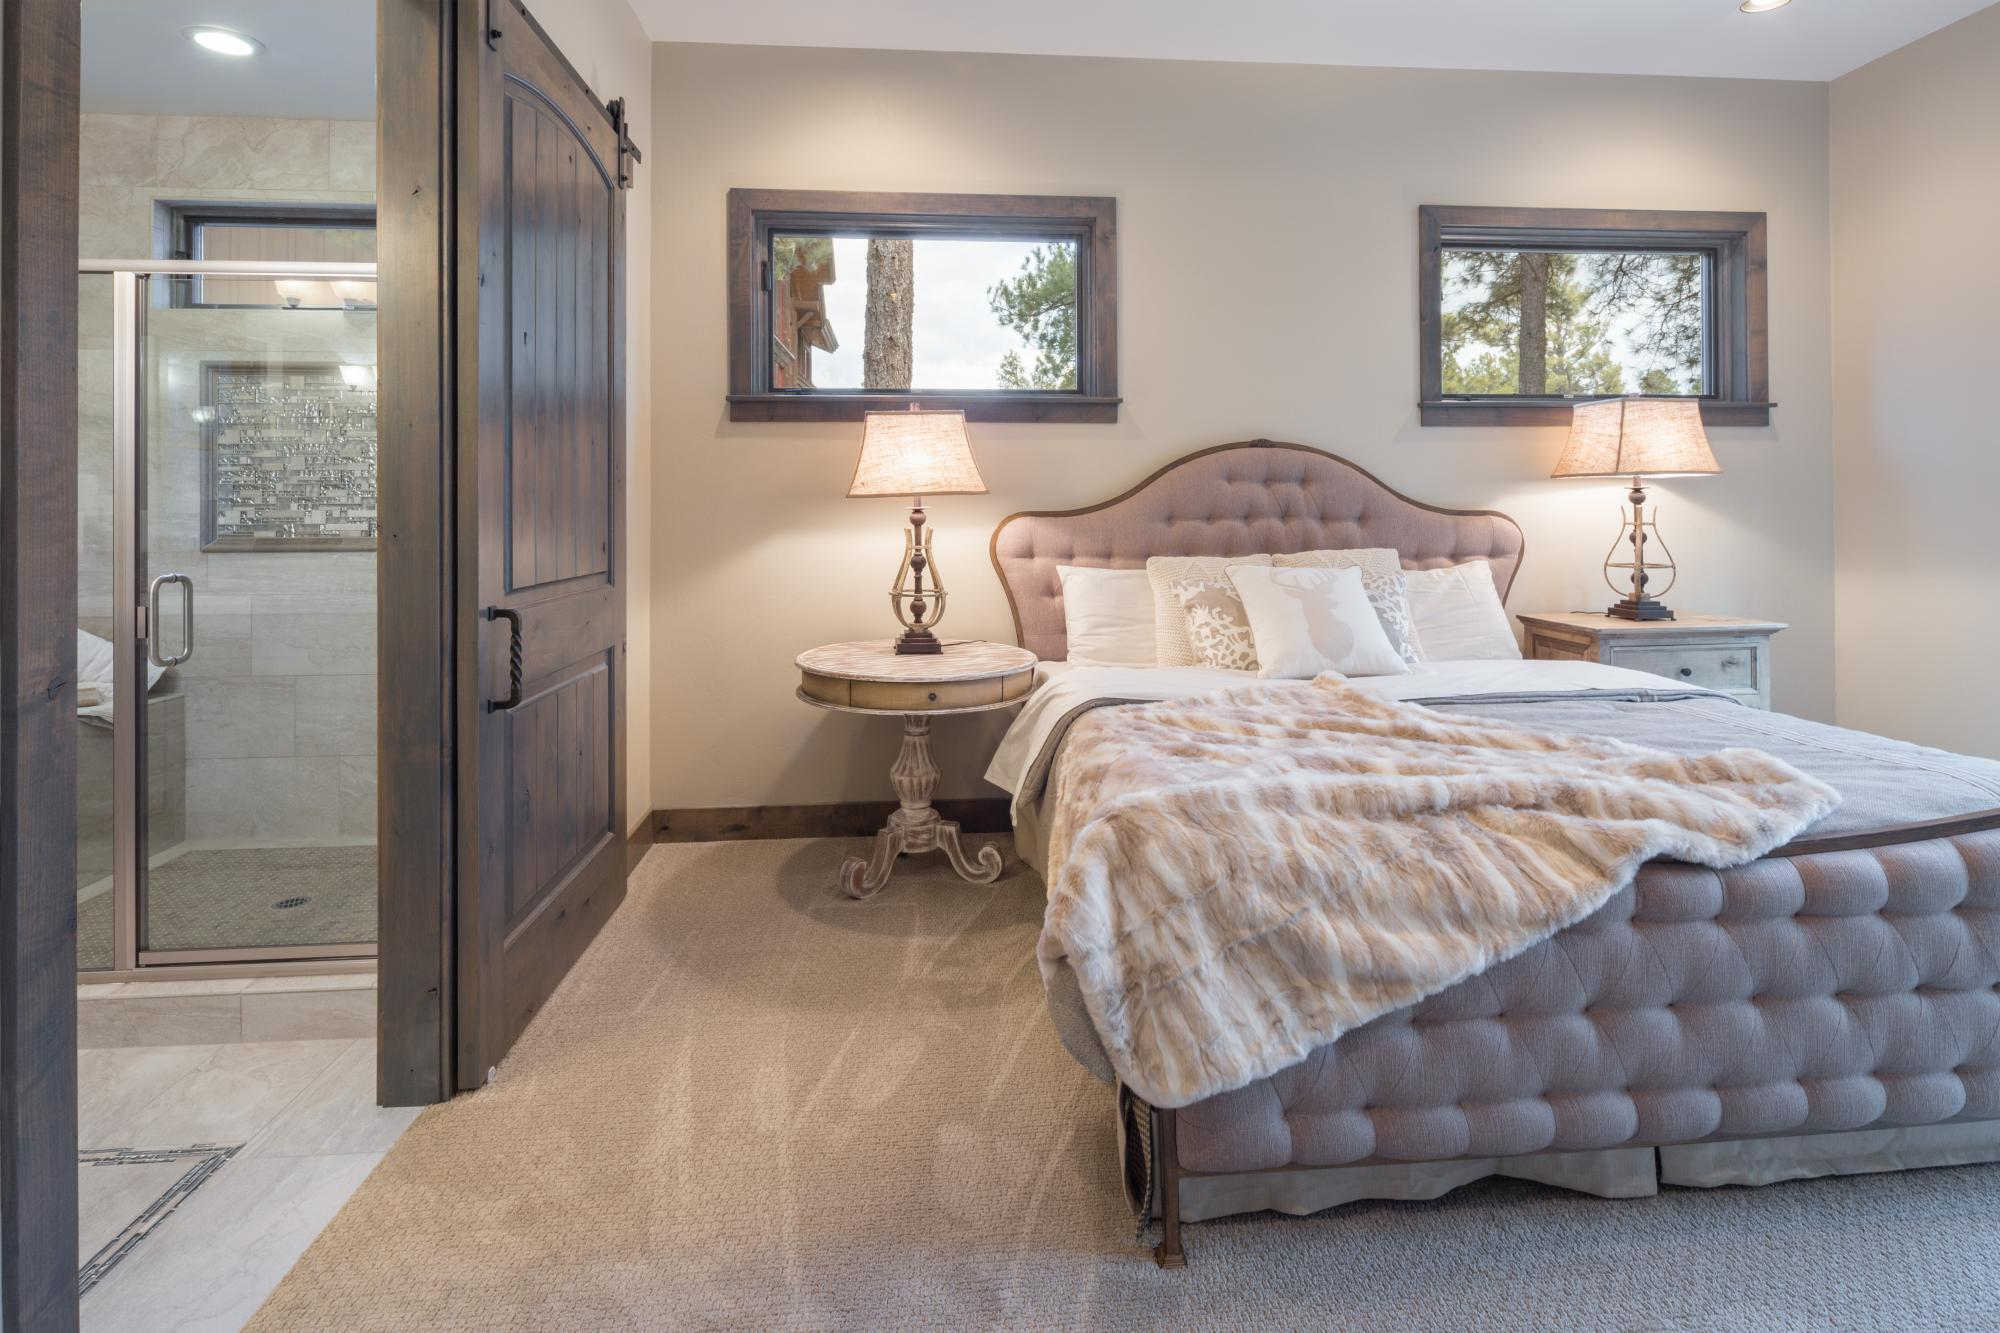 Bedroom featured in the Aspen Shadows Plan 2308 By Capstone Homes in Flagstaff, AZ